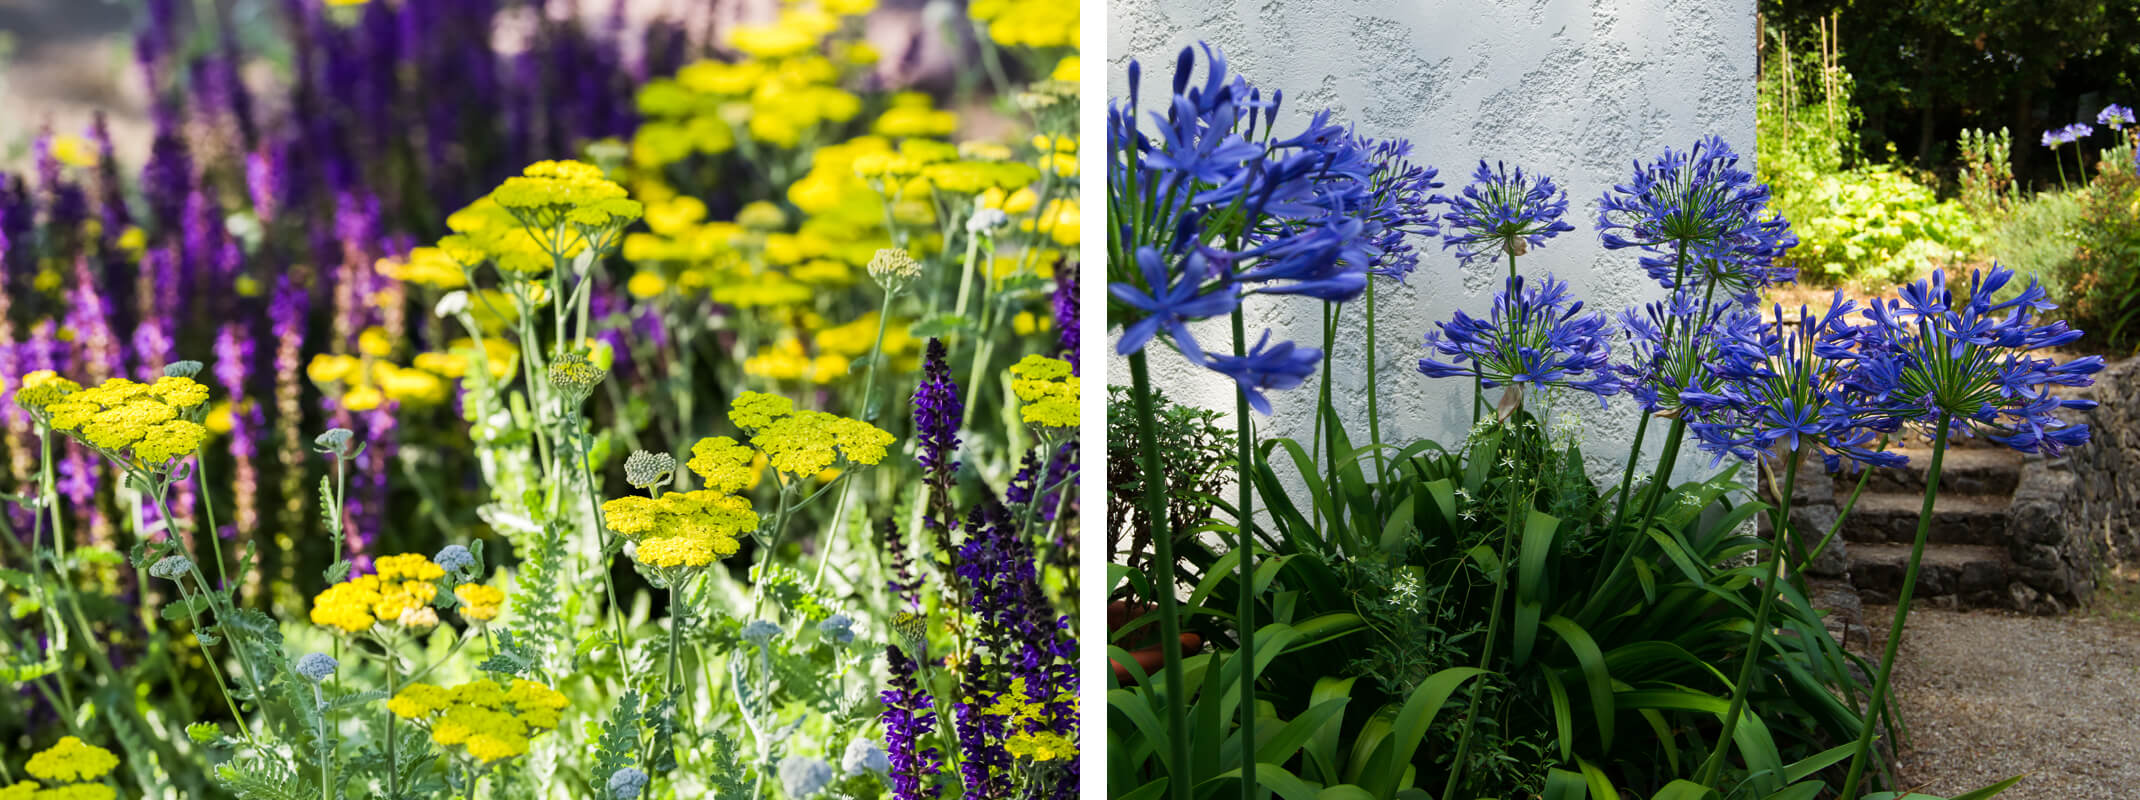 2 images with the first showing yellow yarrow and salvia and the second agapanthus growing next to a white stucco walled home